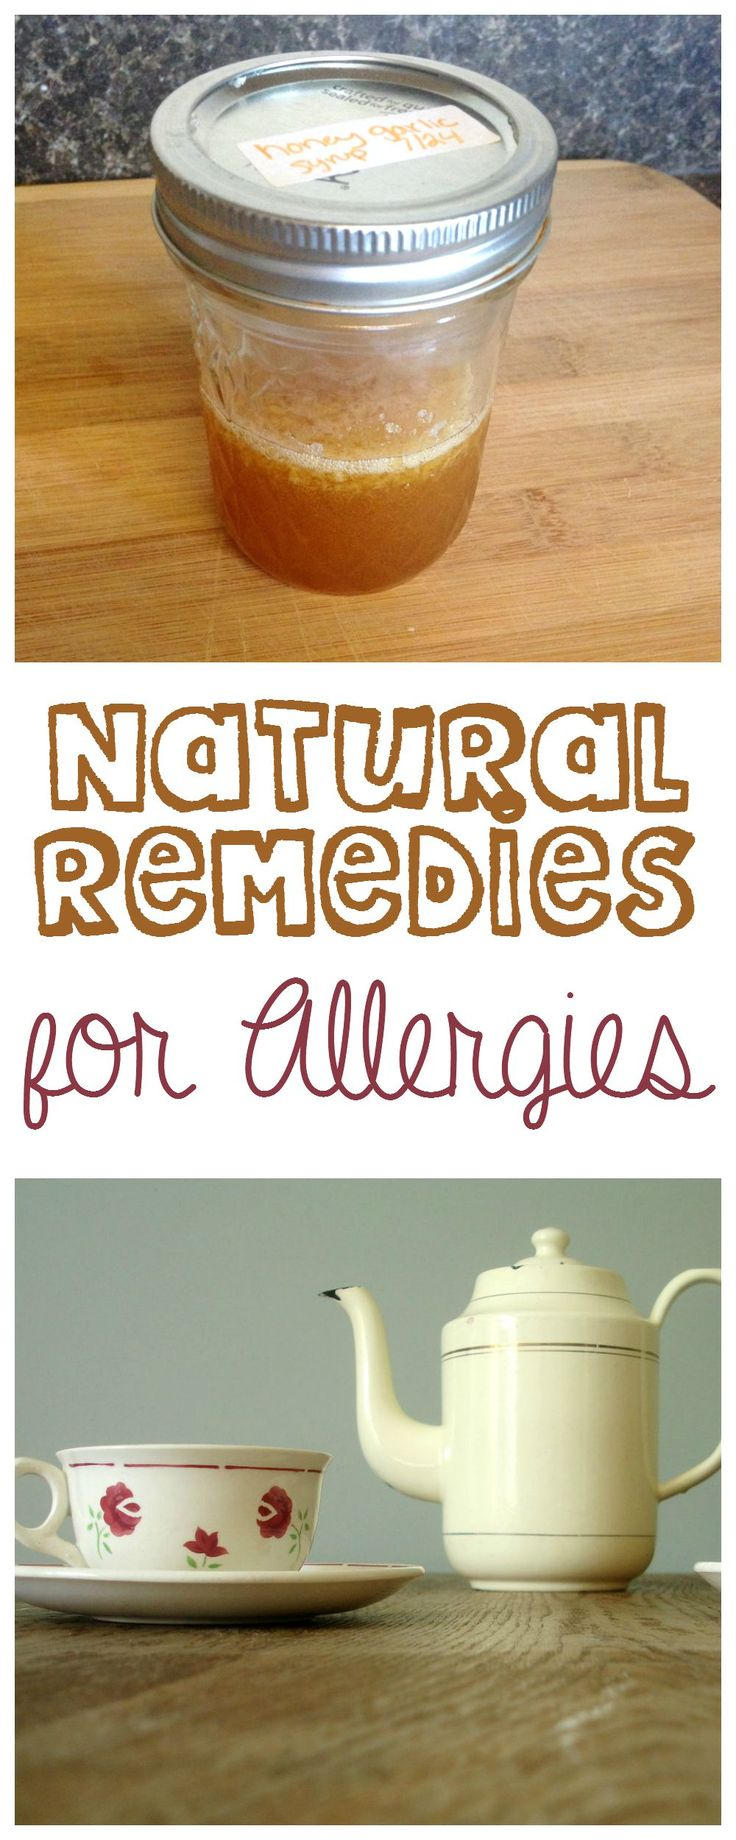 Natural Remedies for Allergies that work! (Skin and seasonal)